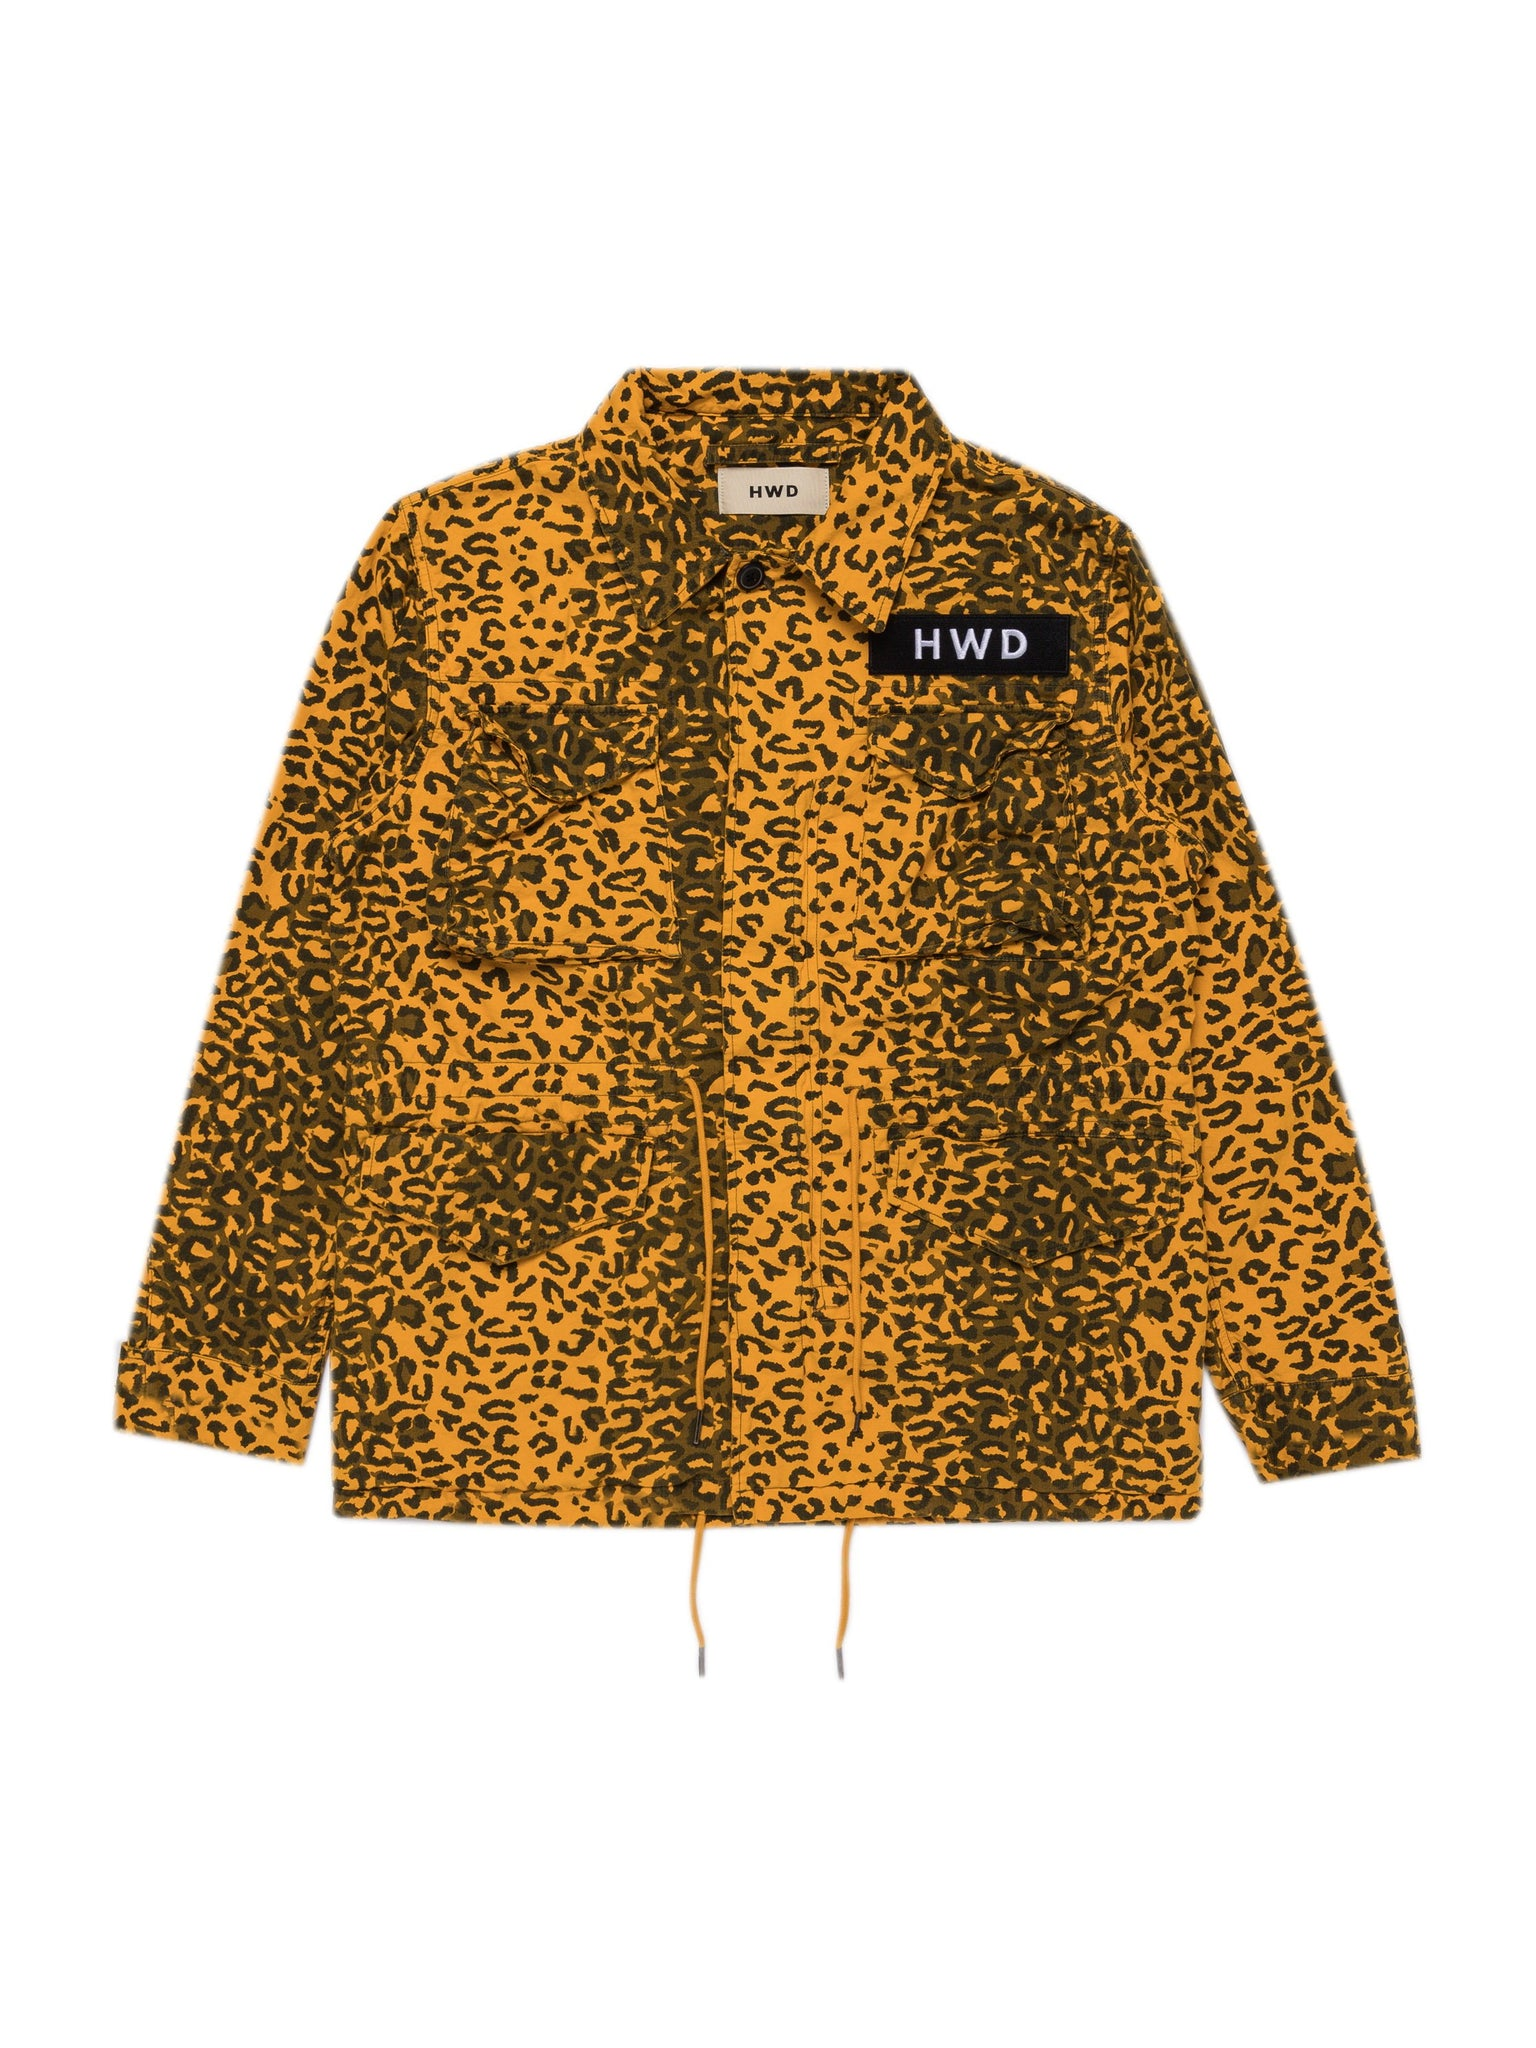 Yellow Cheetah M65 Jacket